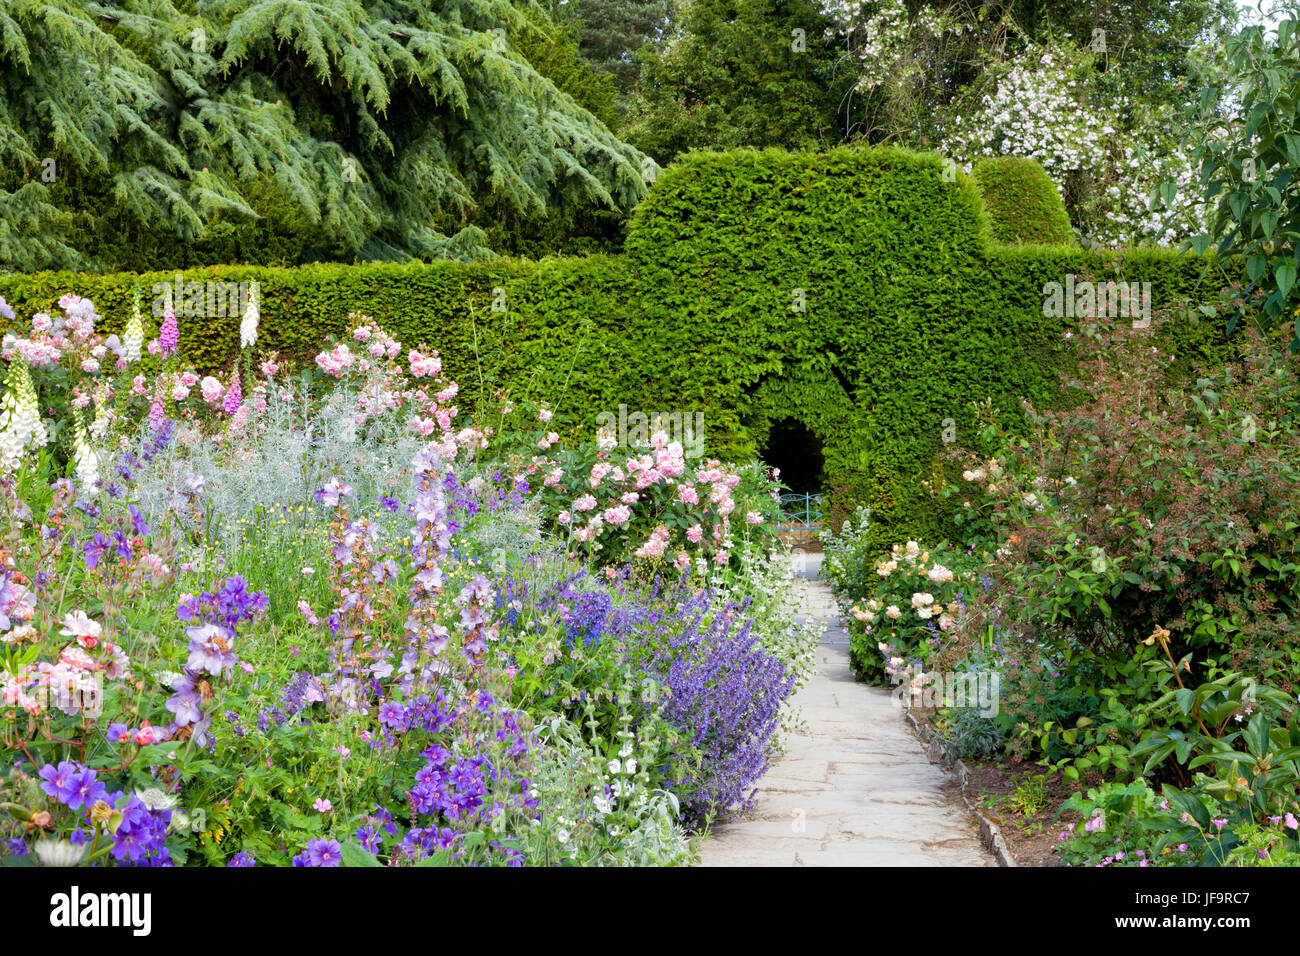 Summer colourful  garden with a walking path through flowers in bloom and green trimmed hedge . - Stock Image